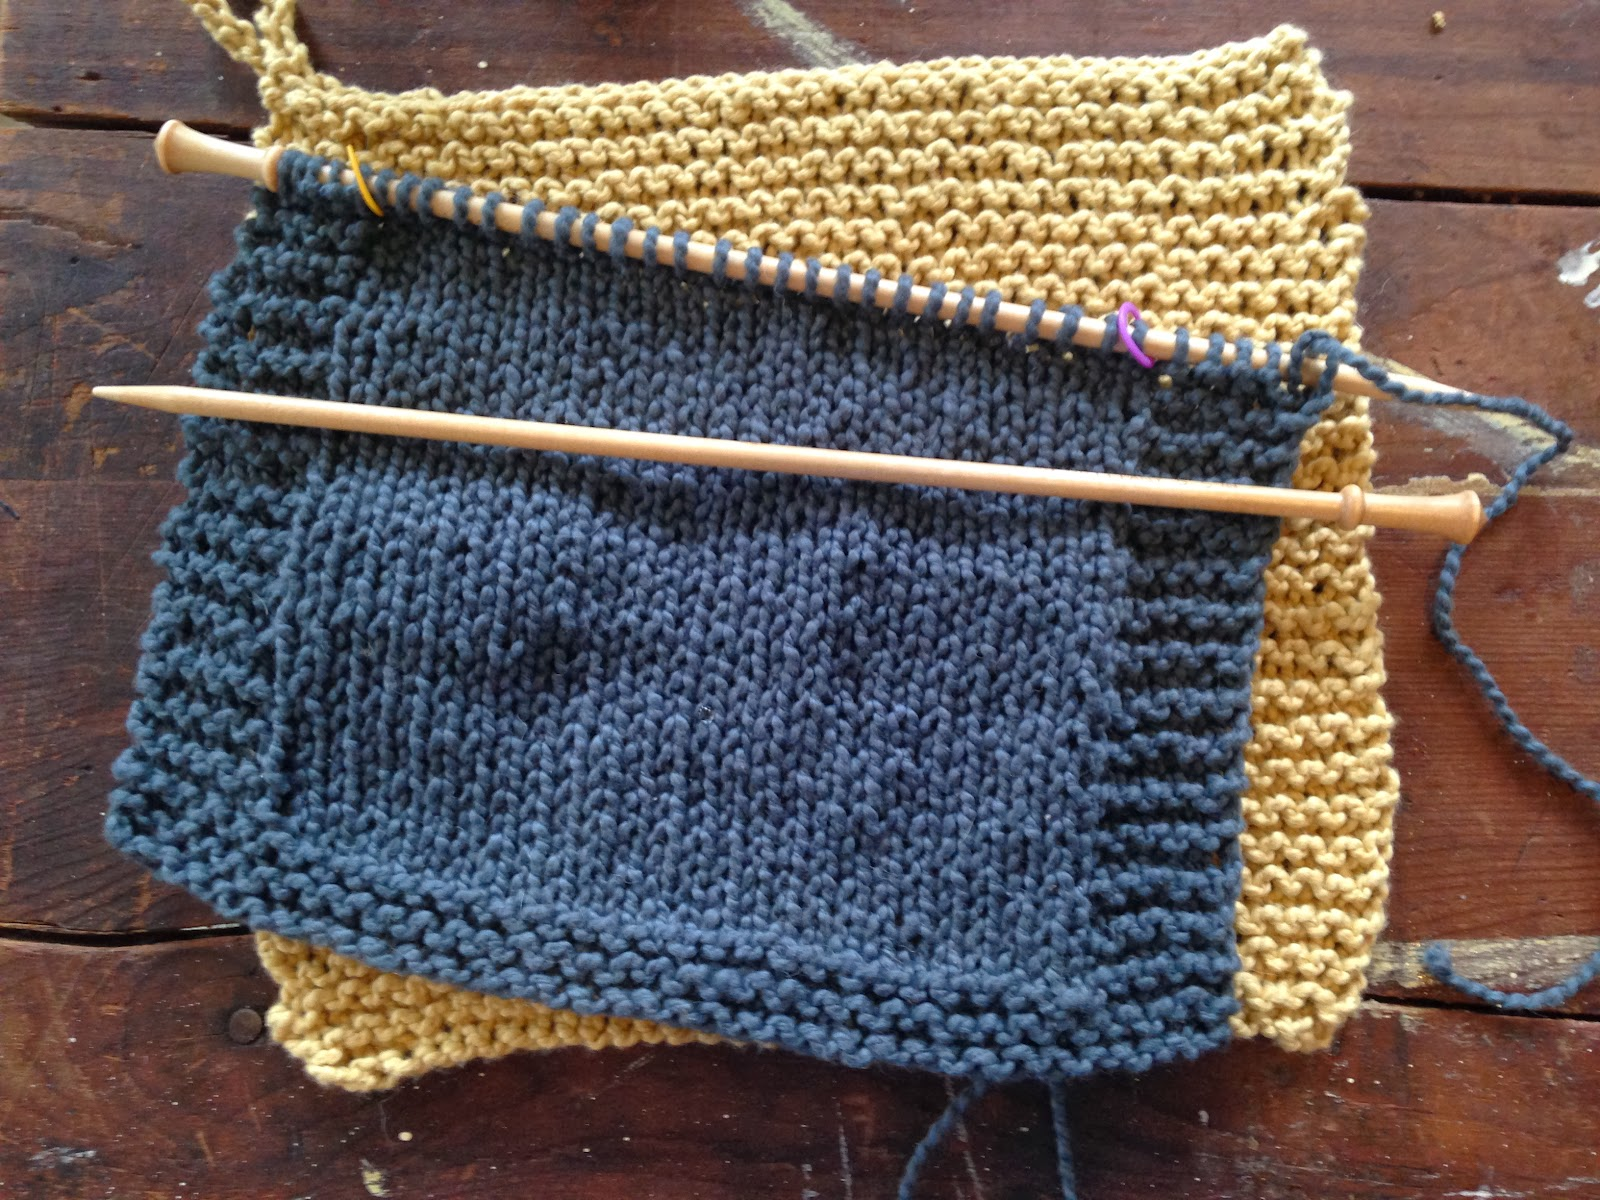 Knitting Worksheets : Arrow acres farm knitting lessons schedule